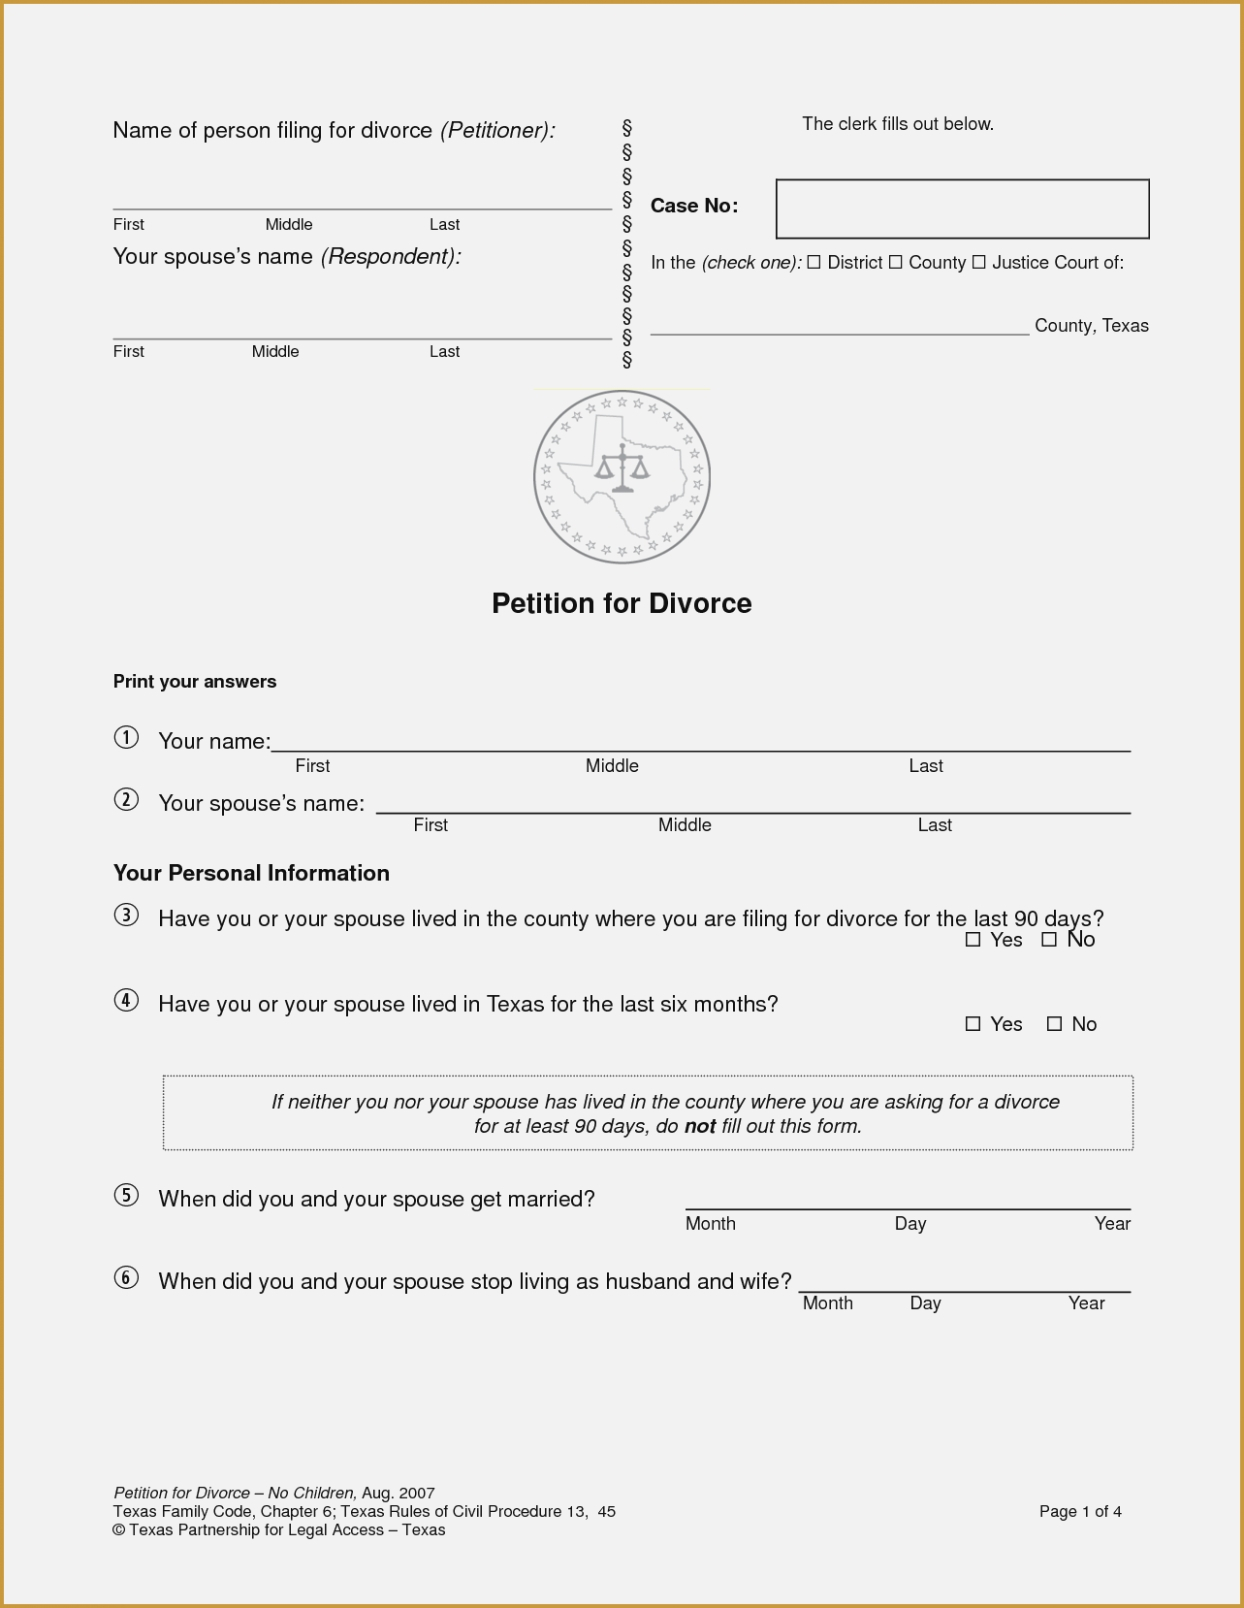 Free Printable Divorce Forms Texas | Bestprintable231118 - Free Printable Divorce Forms Texas